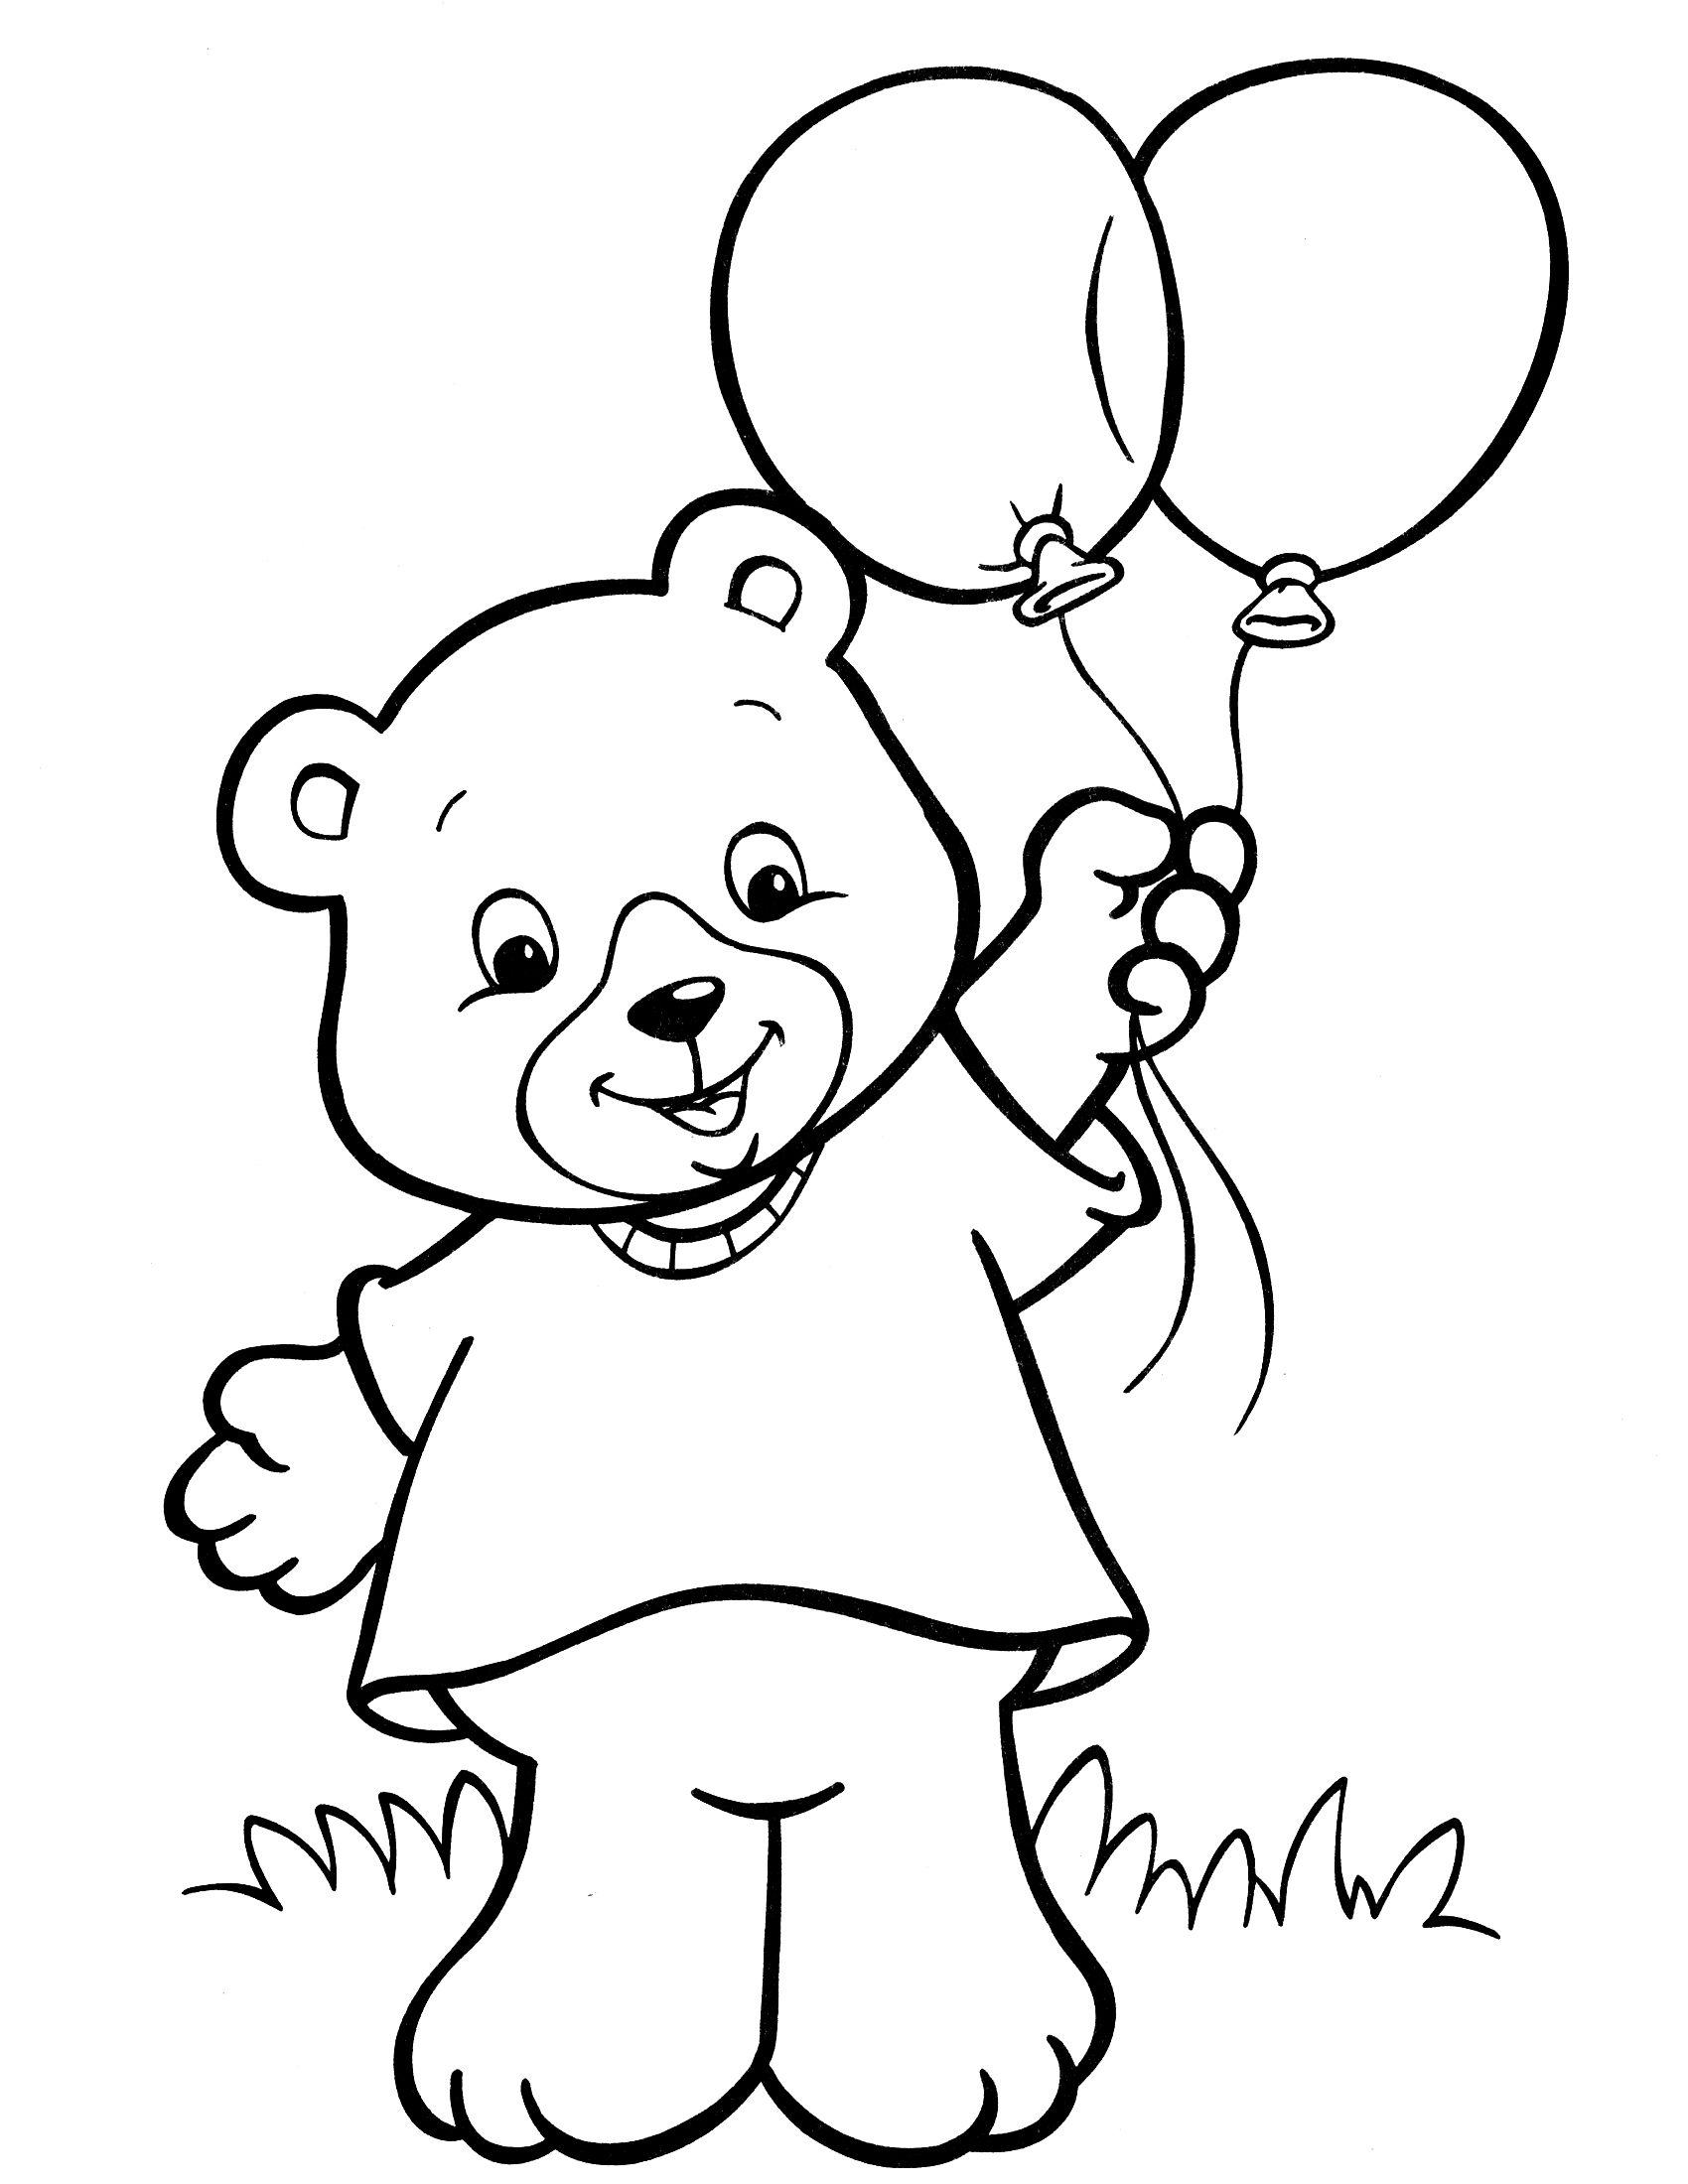 Coloring Pages : Www Free Coloring Pages To Print Crayola Printer - Free Printable Crayola Coupons